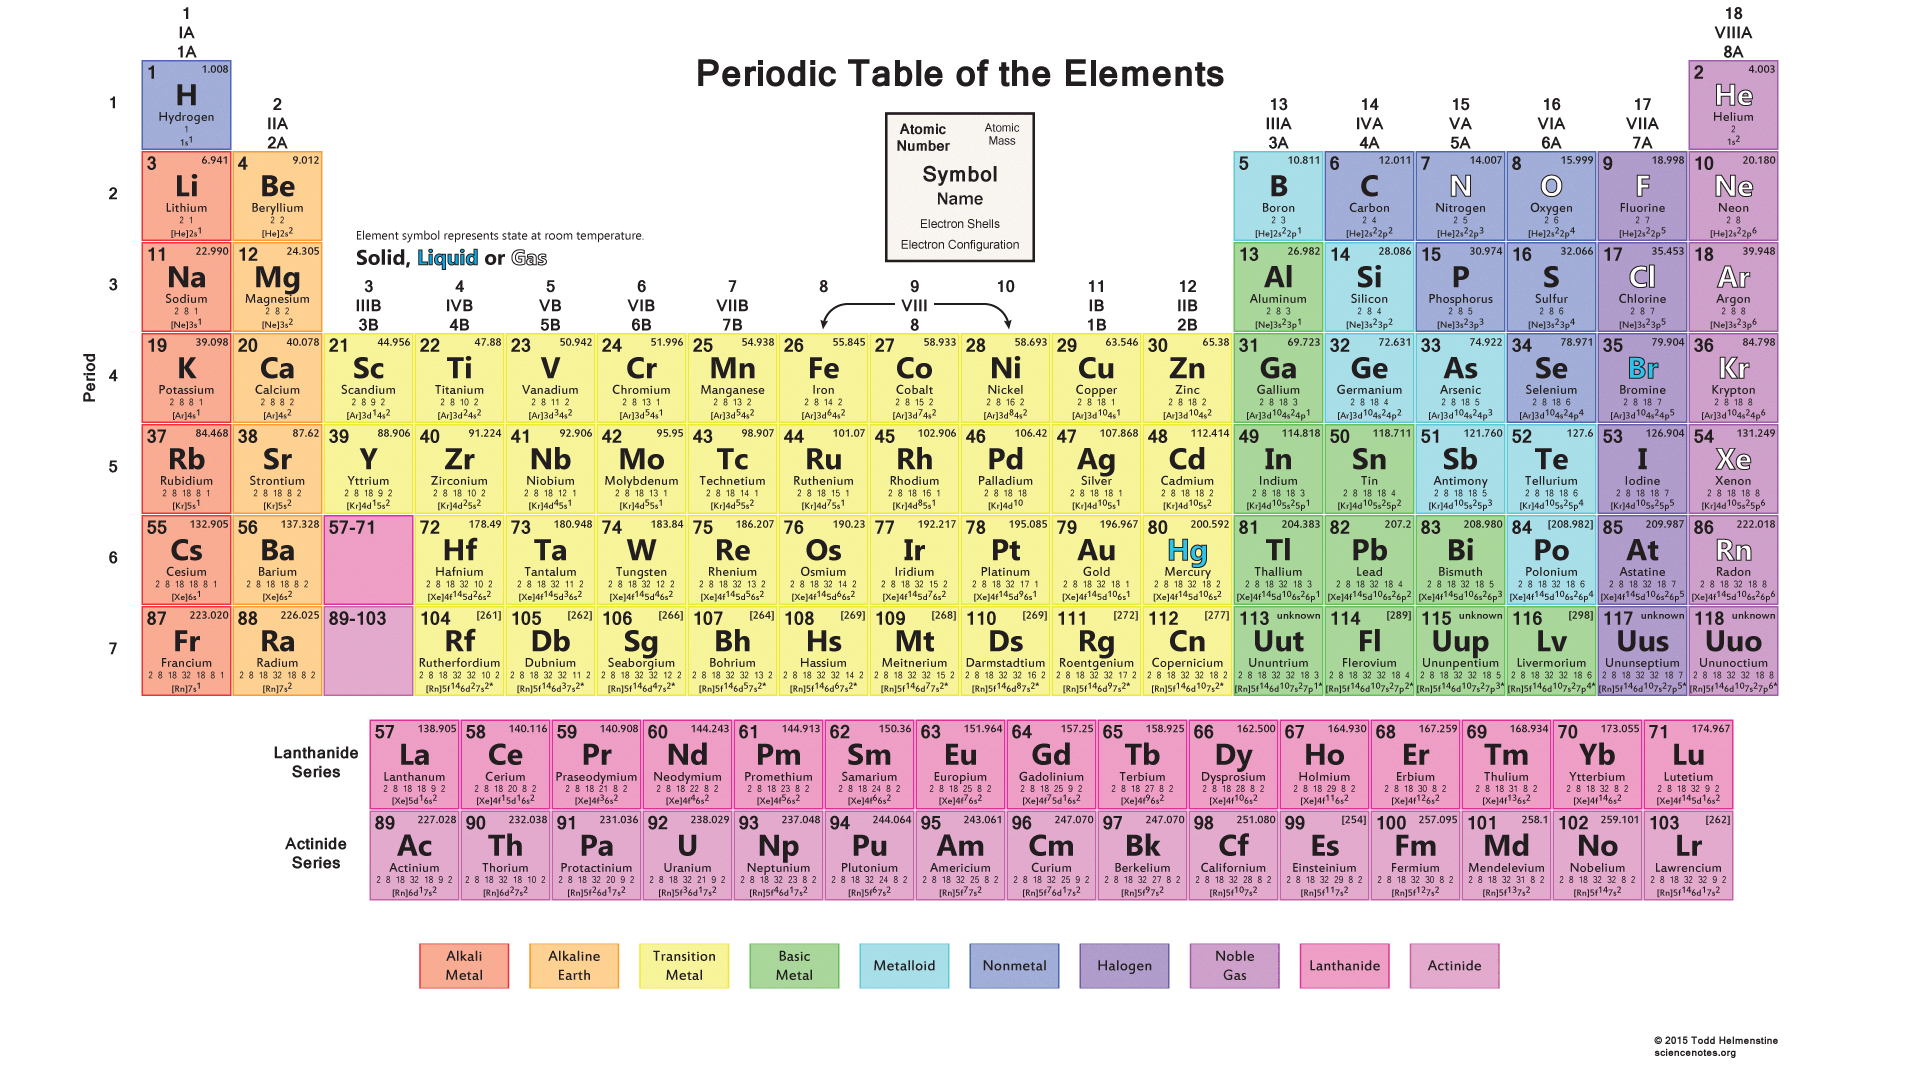 Periodic table elements list names gallery periodic table images electron configuration list google search organic pinterest this printable color periodic table chart is colored to gamestrikefo Choice Image